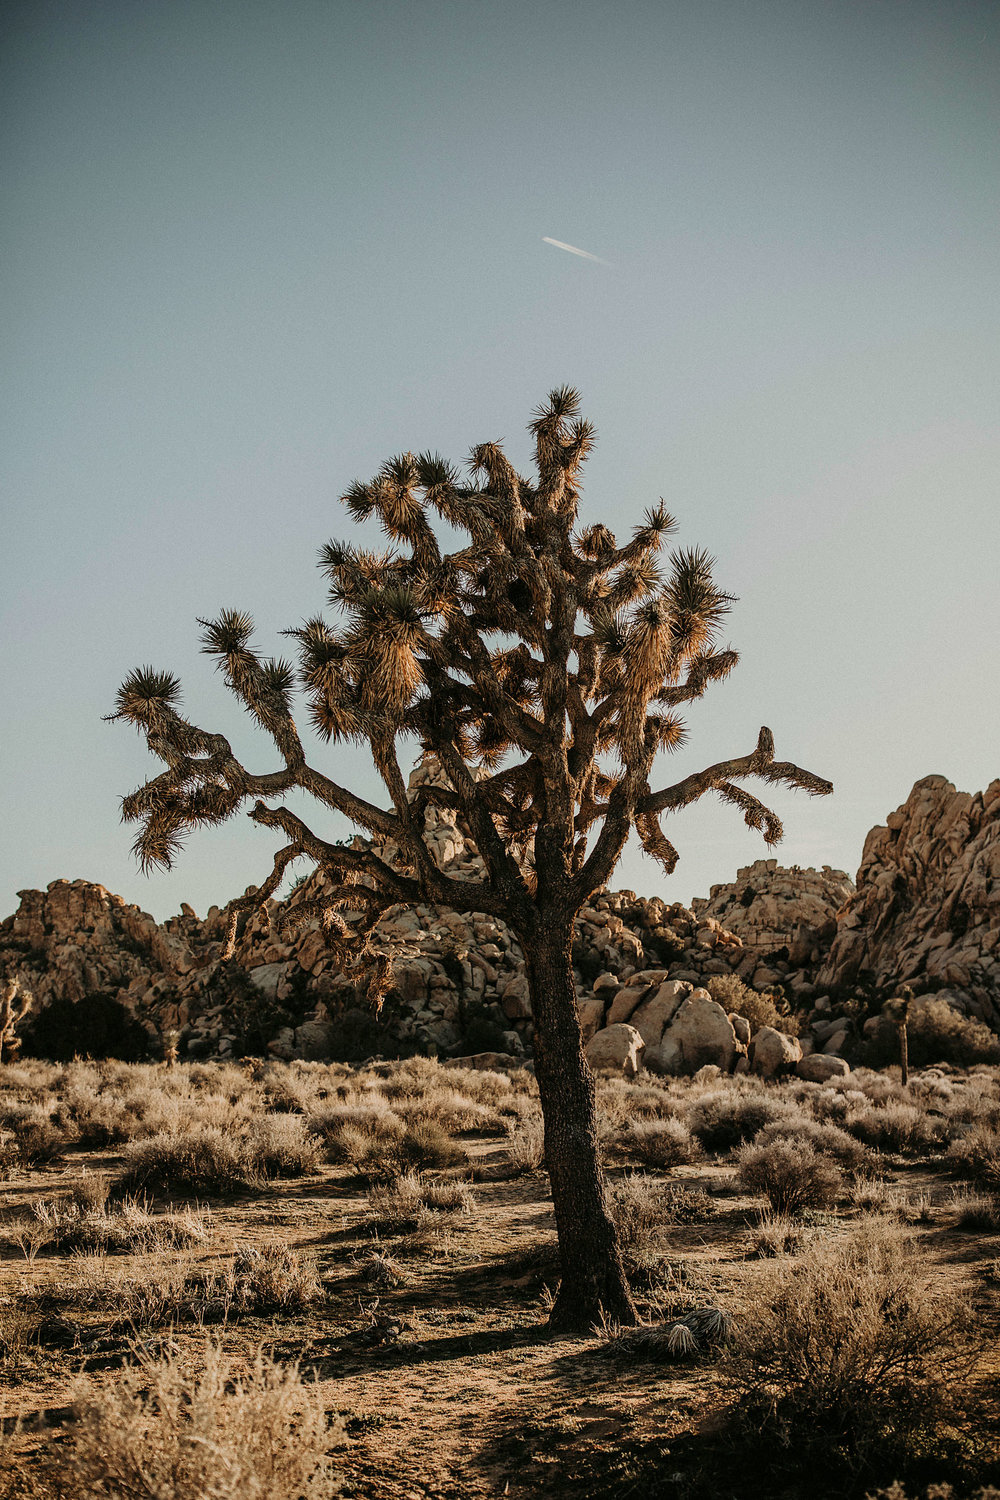 Joshua-Tree-Travel-Photographer-Self-Portraits-11.jpg